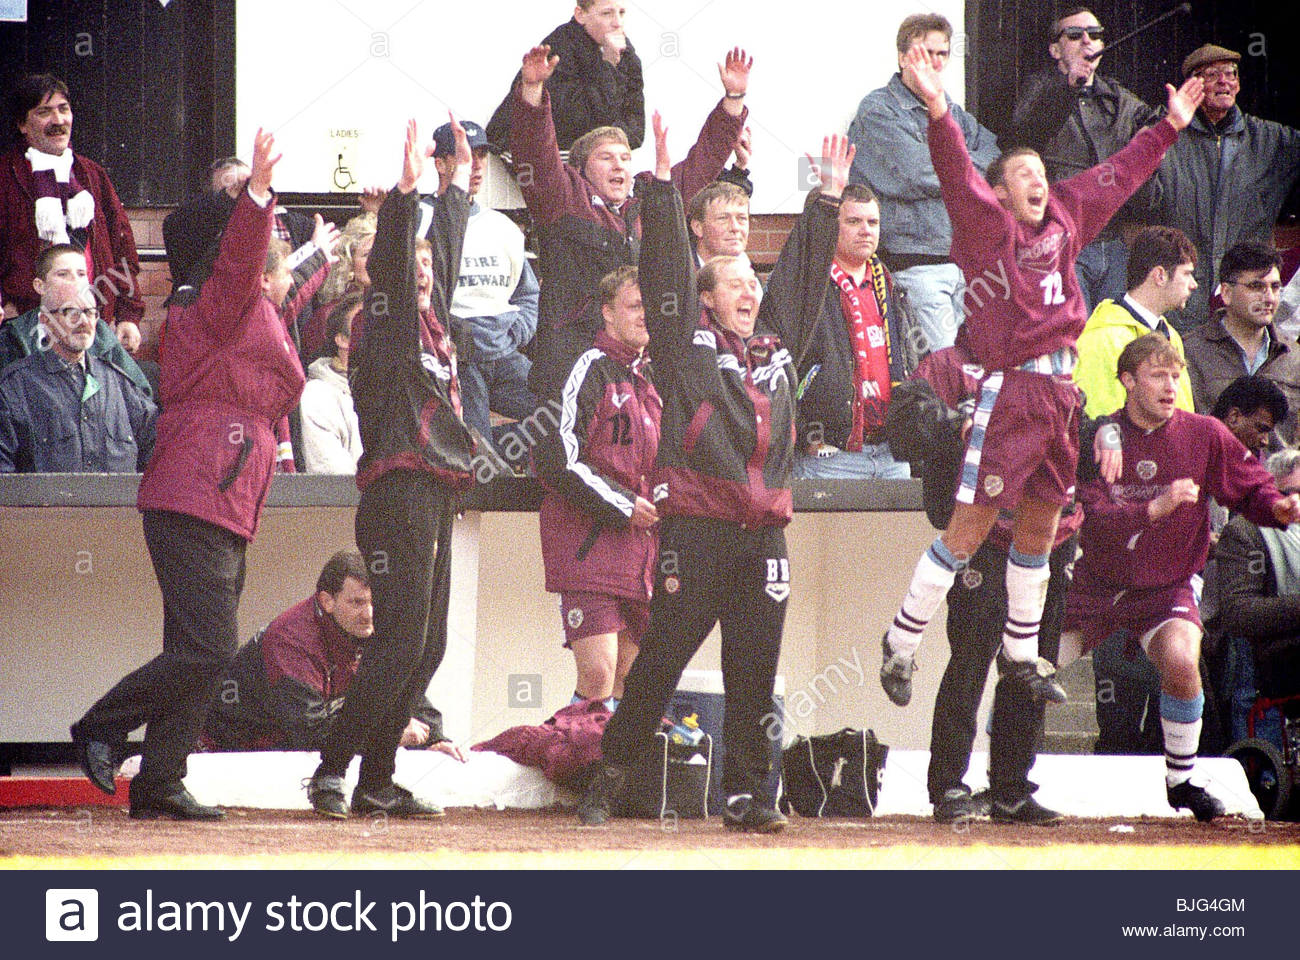 06/04/96 TENNENT'S SCOTTISH CUP SEMI FINAL HEARTS V ABERDEEN (2-1) HAMPDEN - GLASGOW The management team and - Stock Image